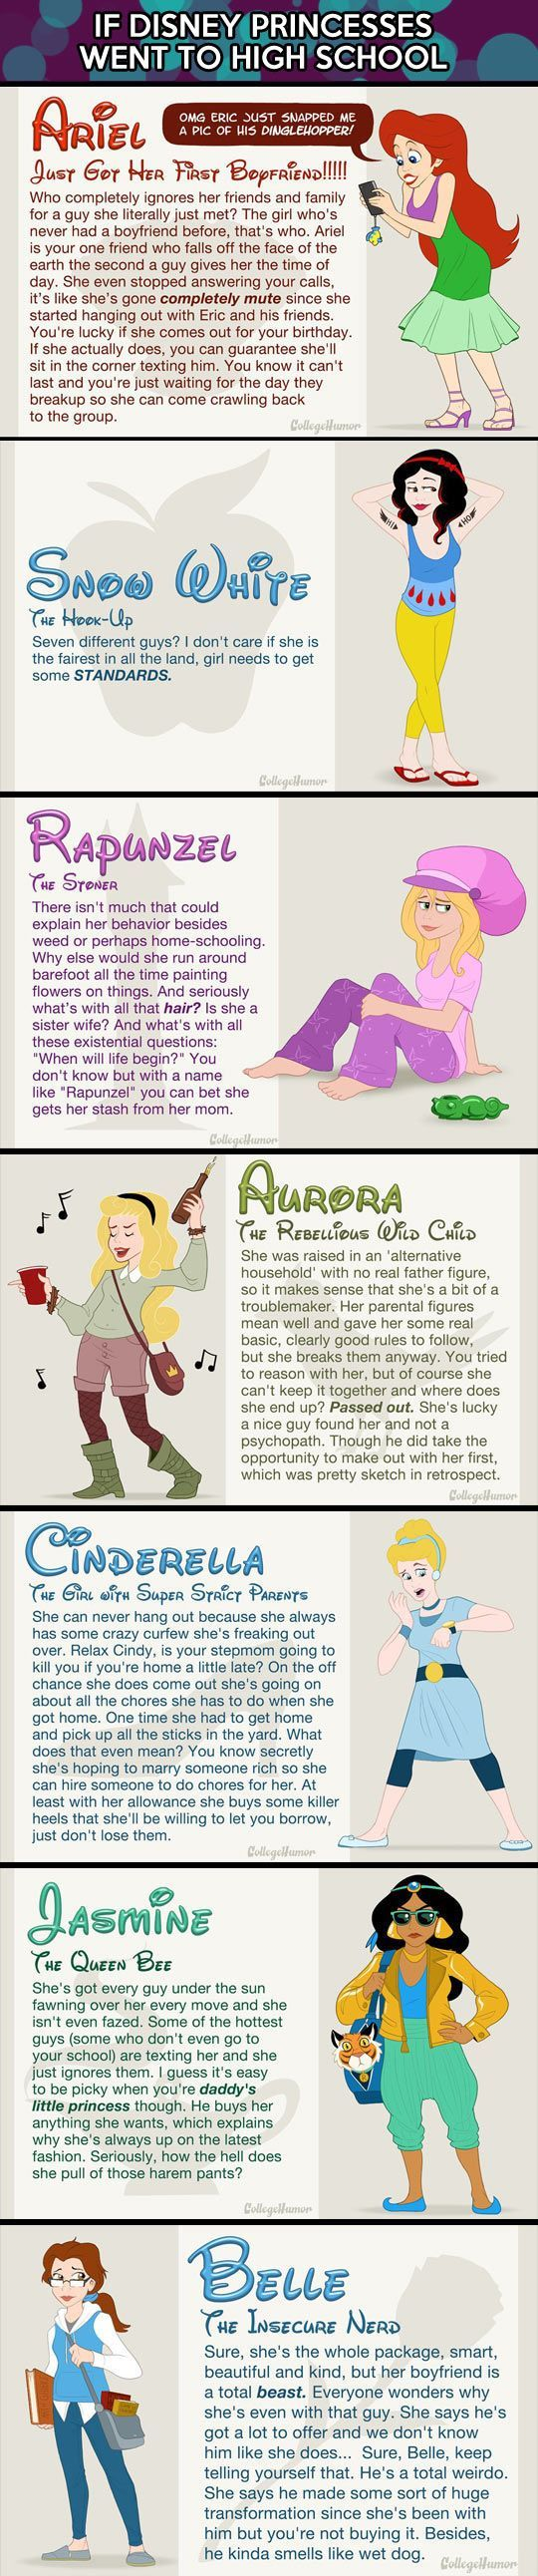 Ever wondered what it might look like if #DisneyPrincesses were ordinary high schools students? #Disney